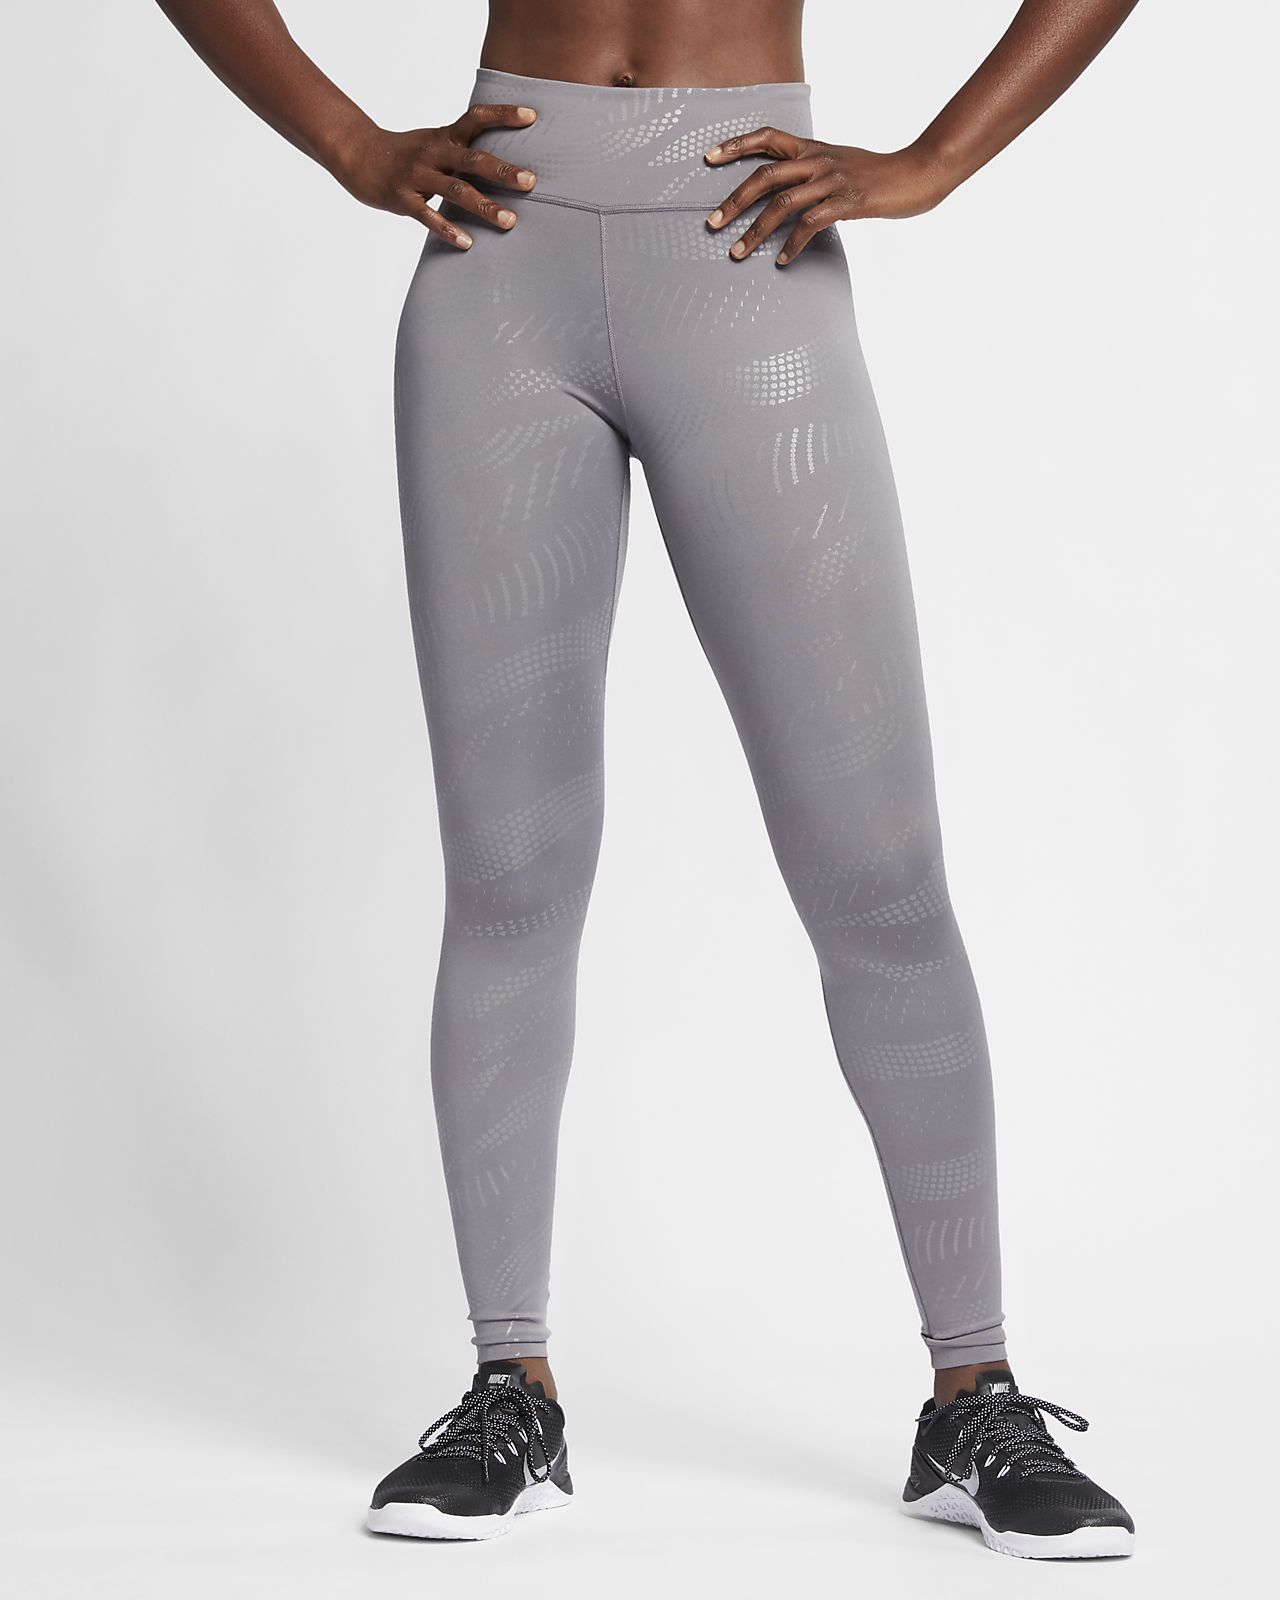 e026d86240 Low Resolution Nike One Women s Printed Tights Nike One Women s Printed  Tights